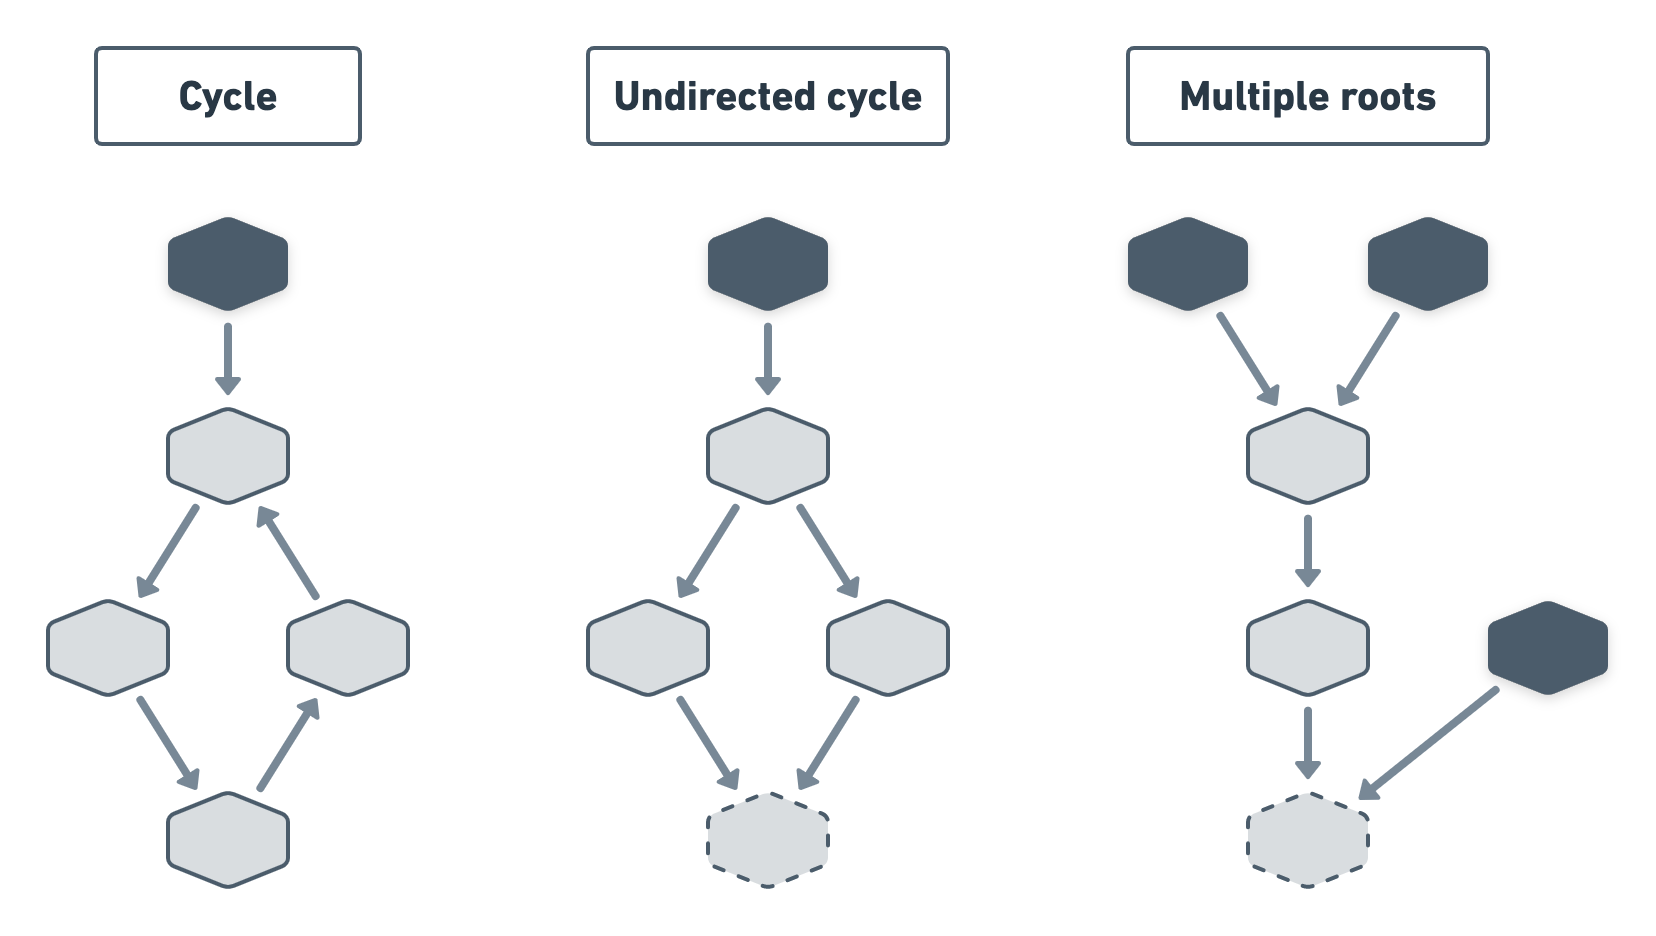 3 diagrams. From left to right: nodes forming a circular dependency; one node having multiple parents in a single-root cluster; a cluster of nodes with multiple roots